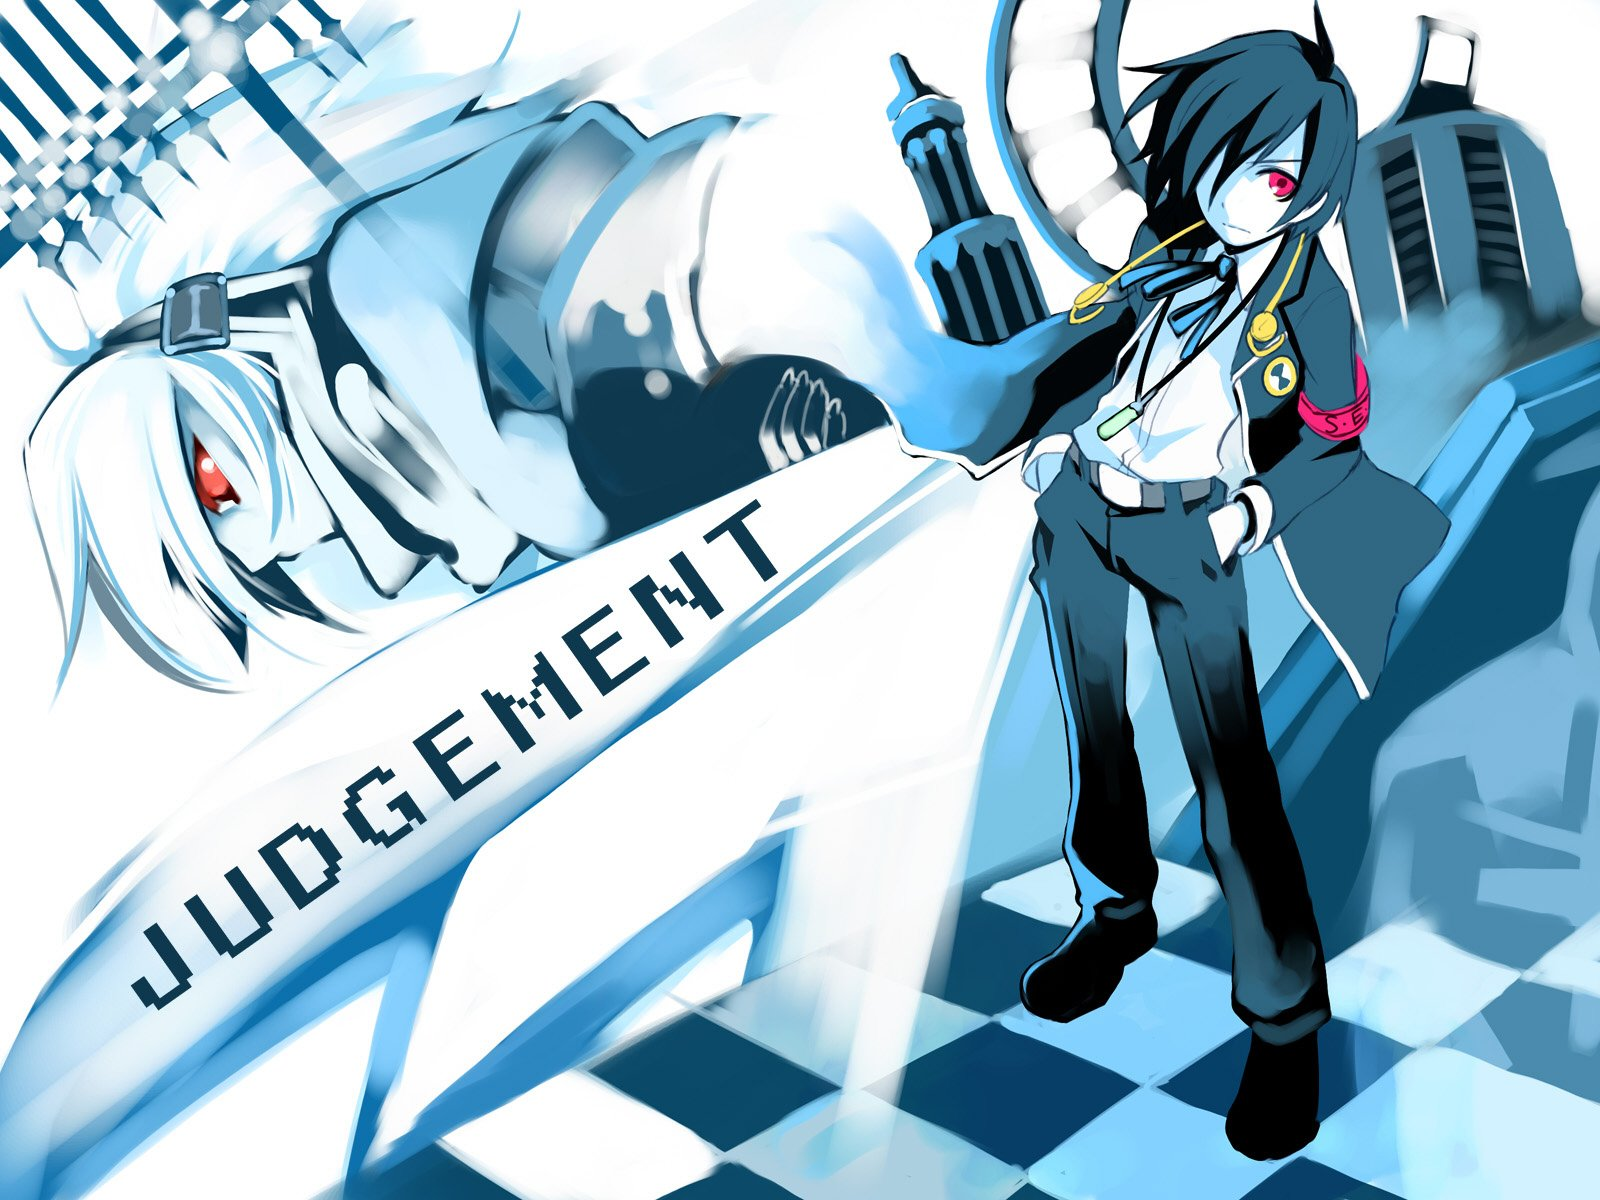 148 Persona 3 Hd Wallpapers Background Images Wallpaper